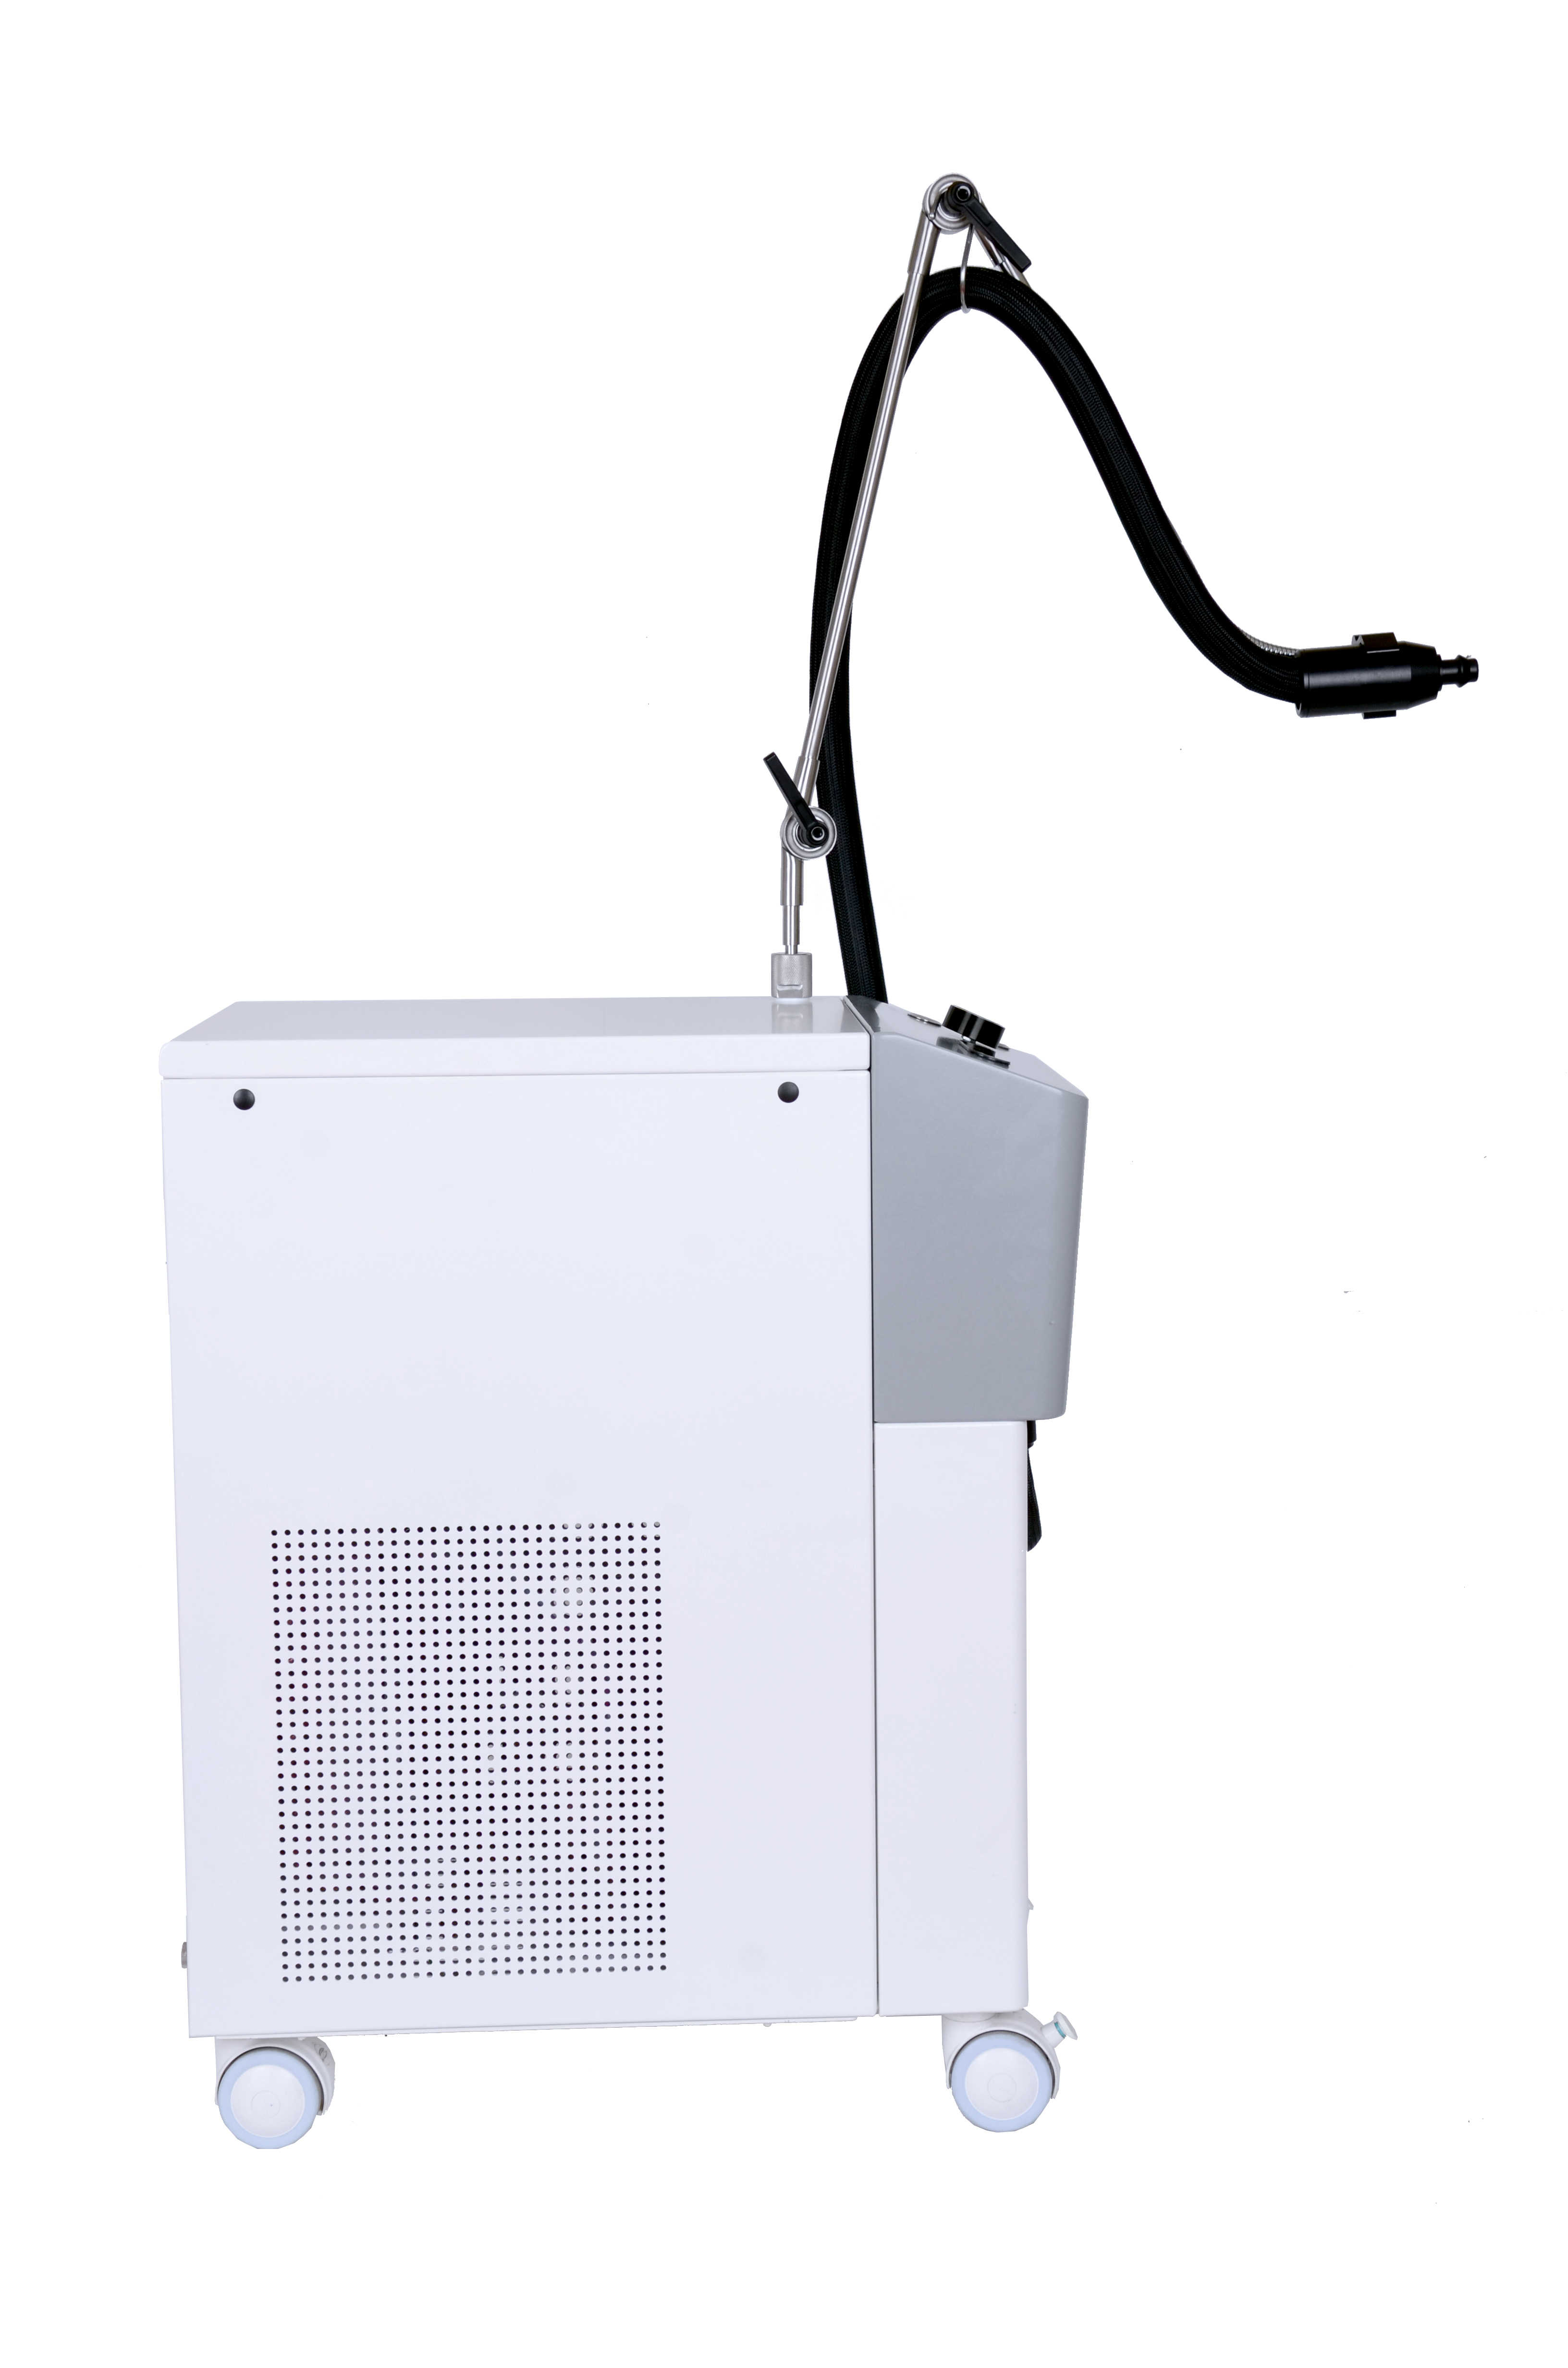 2020 Skin Cooler Zimmer Cryo Skin Cryo Therapy Machine For Laser Treatment Cold Air Use Aliexpress